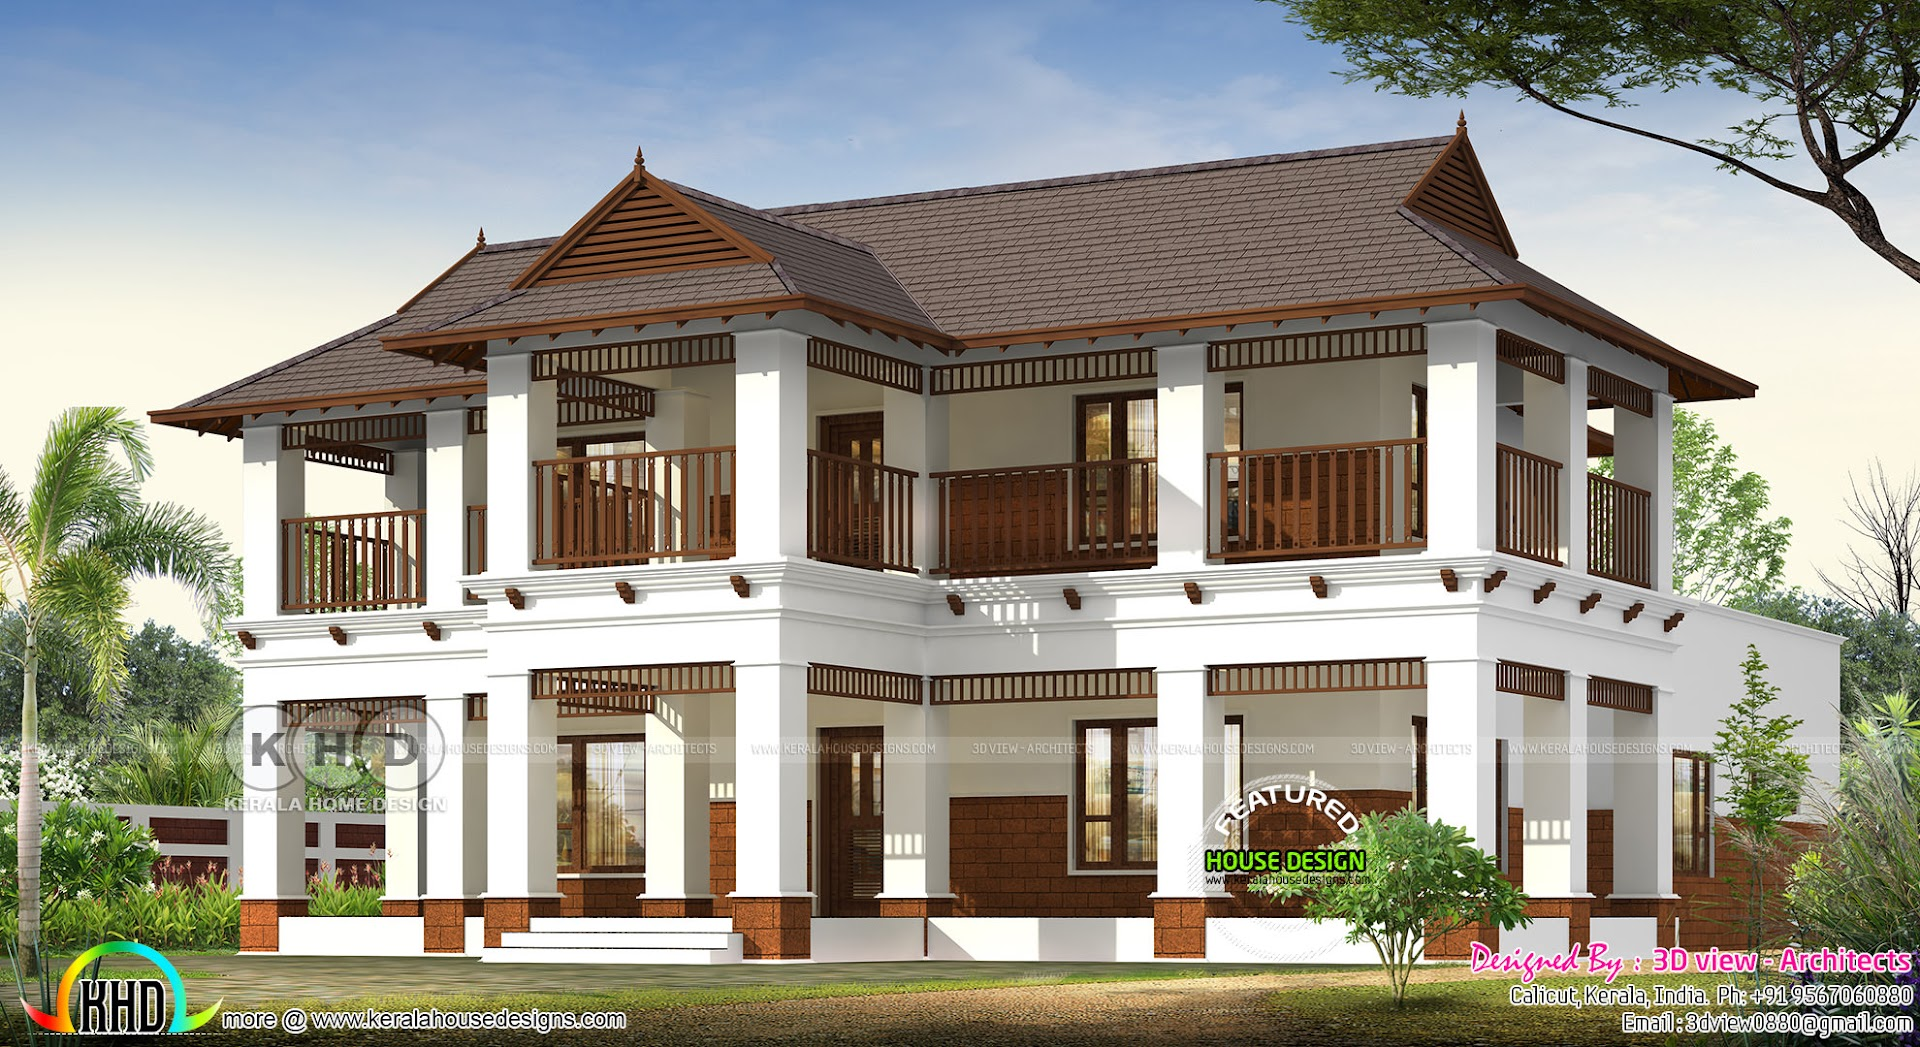 Kerala Home Design Architecture Design